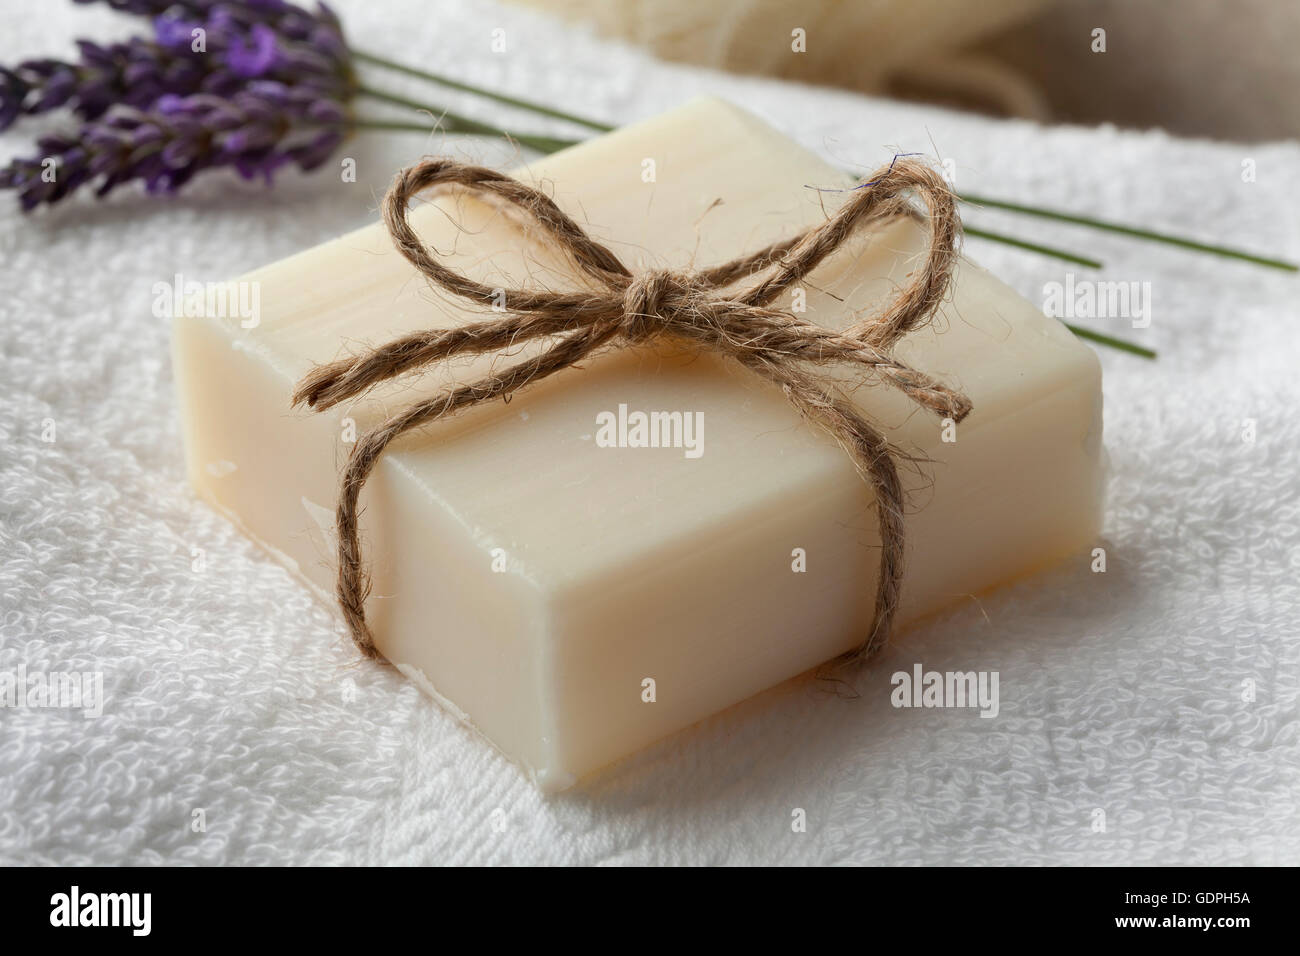 Piece of lavender soap and olive oil - Stock Image